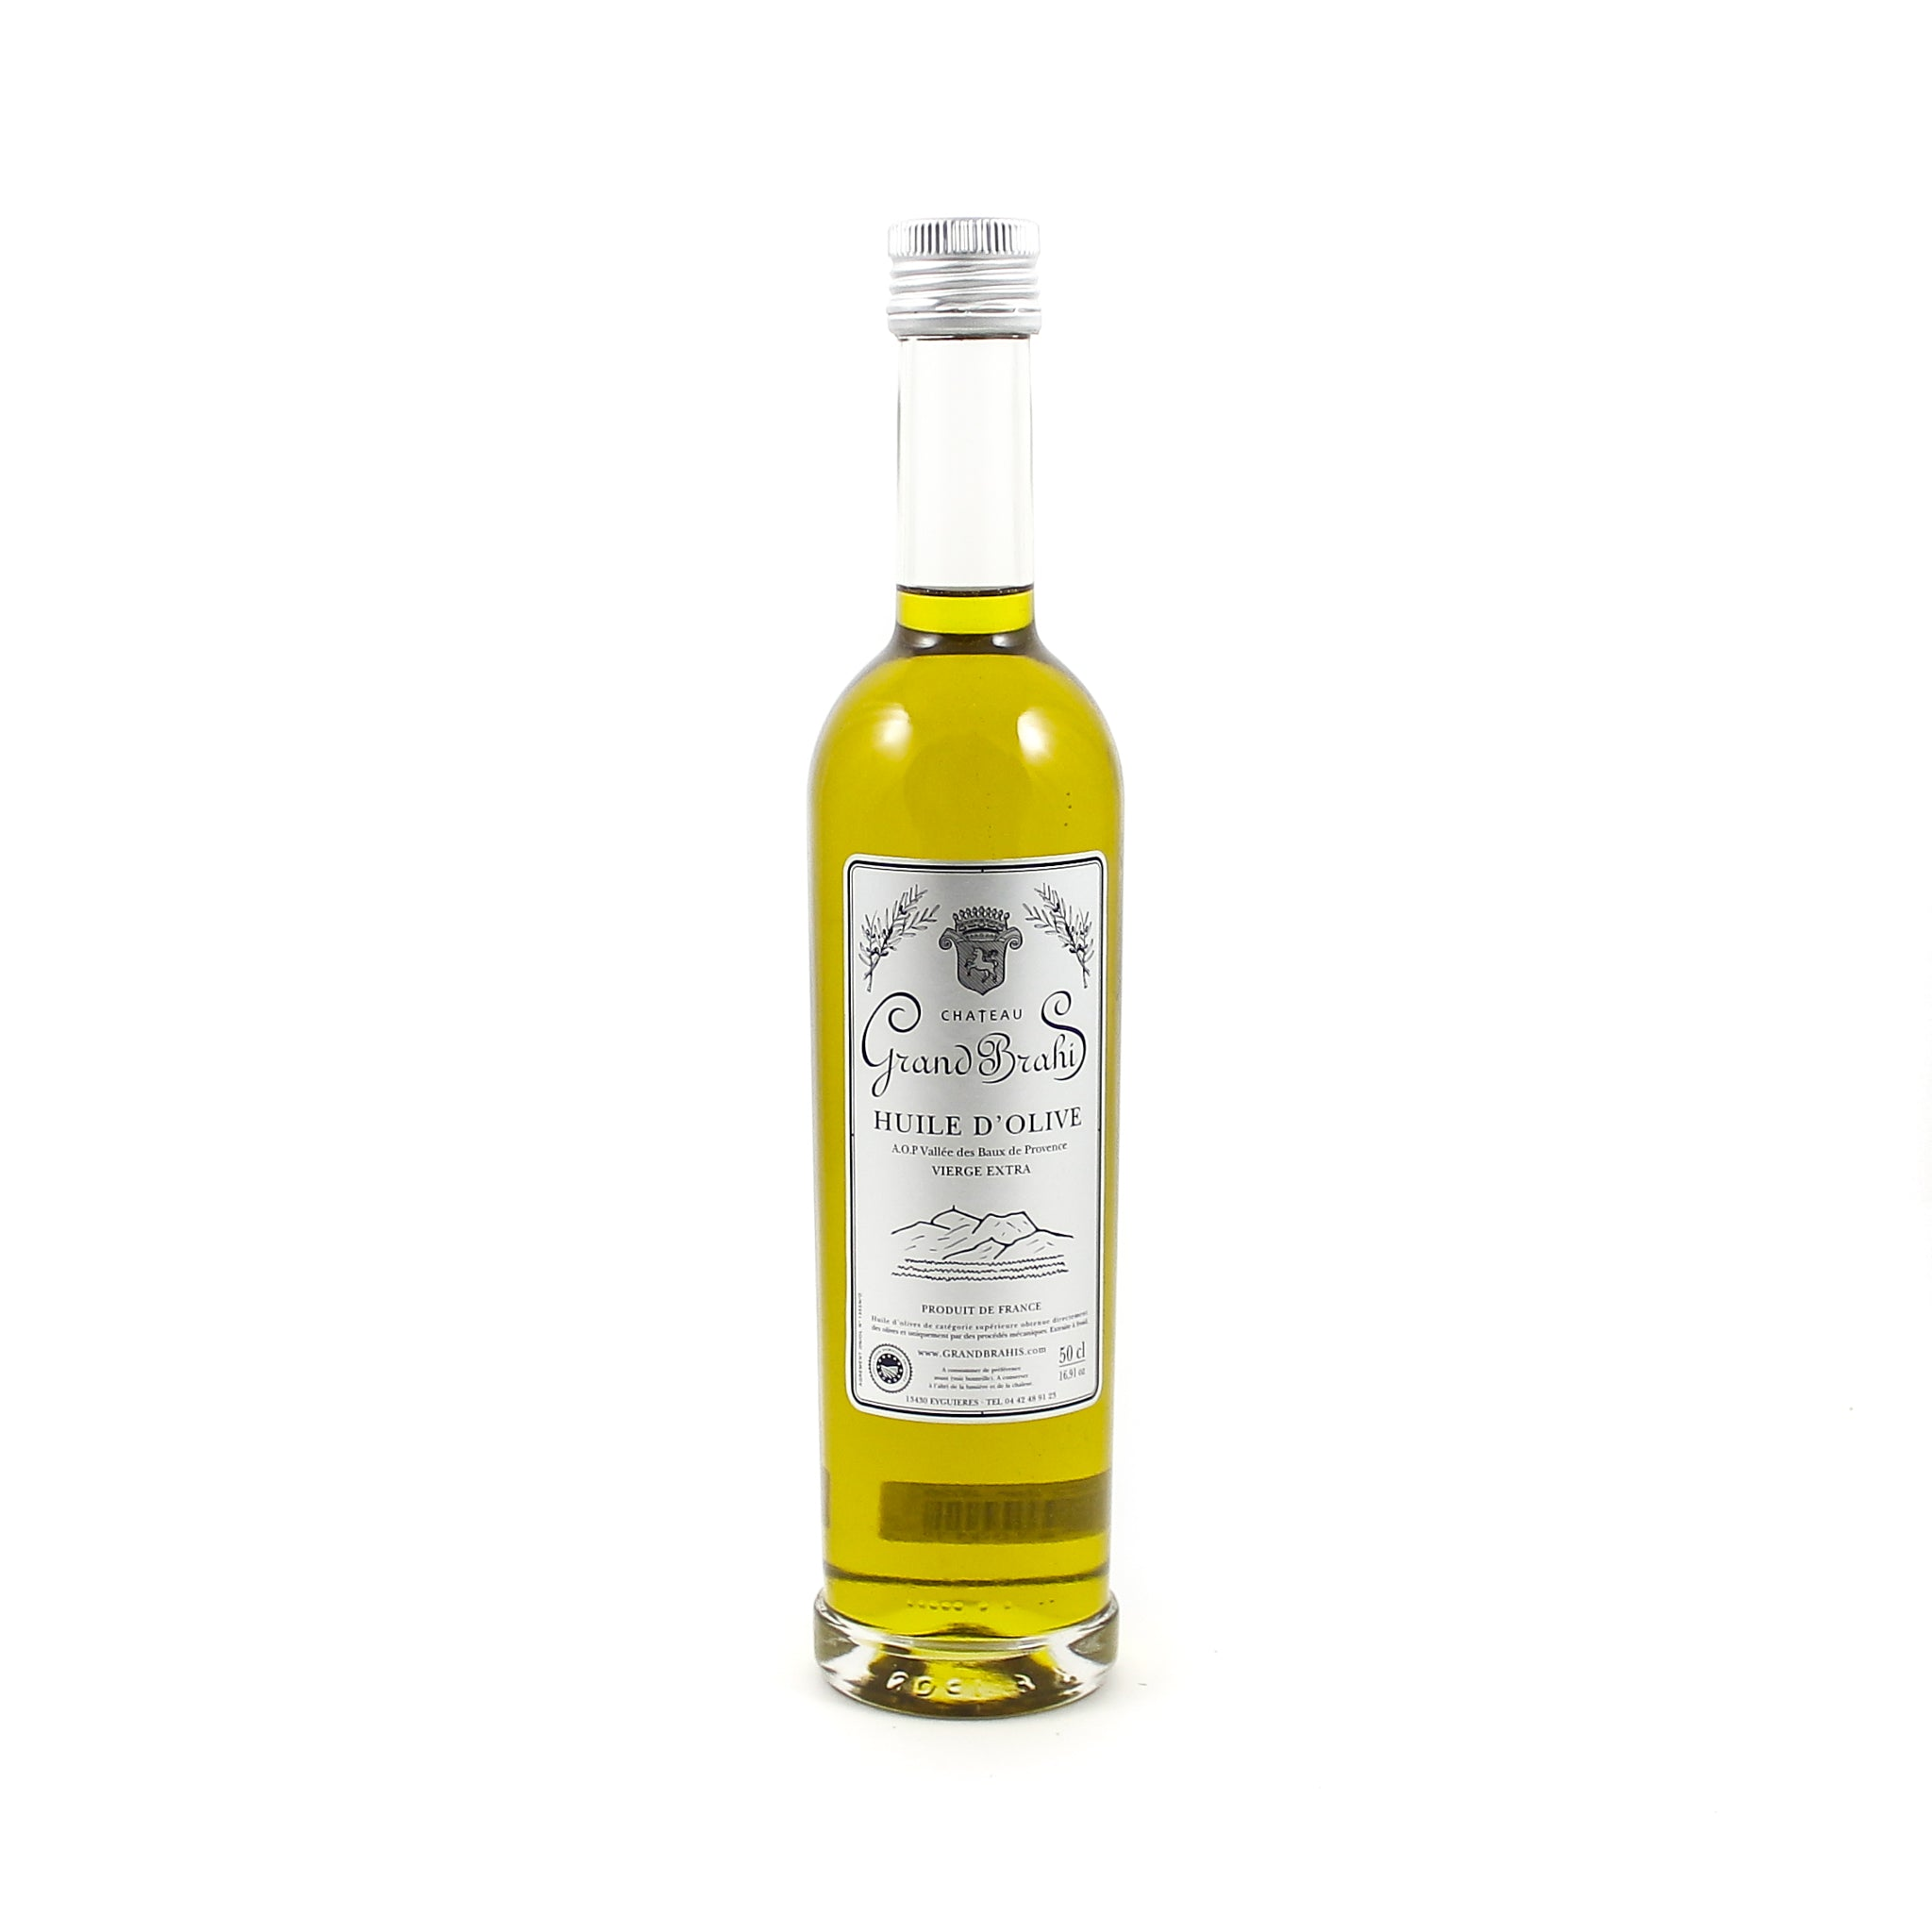 Grand Brahis Vert AOP Vallee des Baux de Provence Extra Virgin Olive Oil 500ml Ingredients Oils & Vinegars French Food